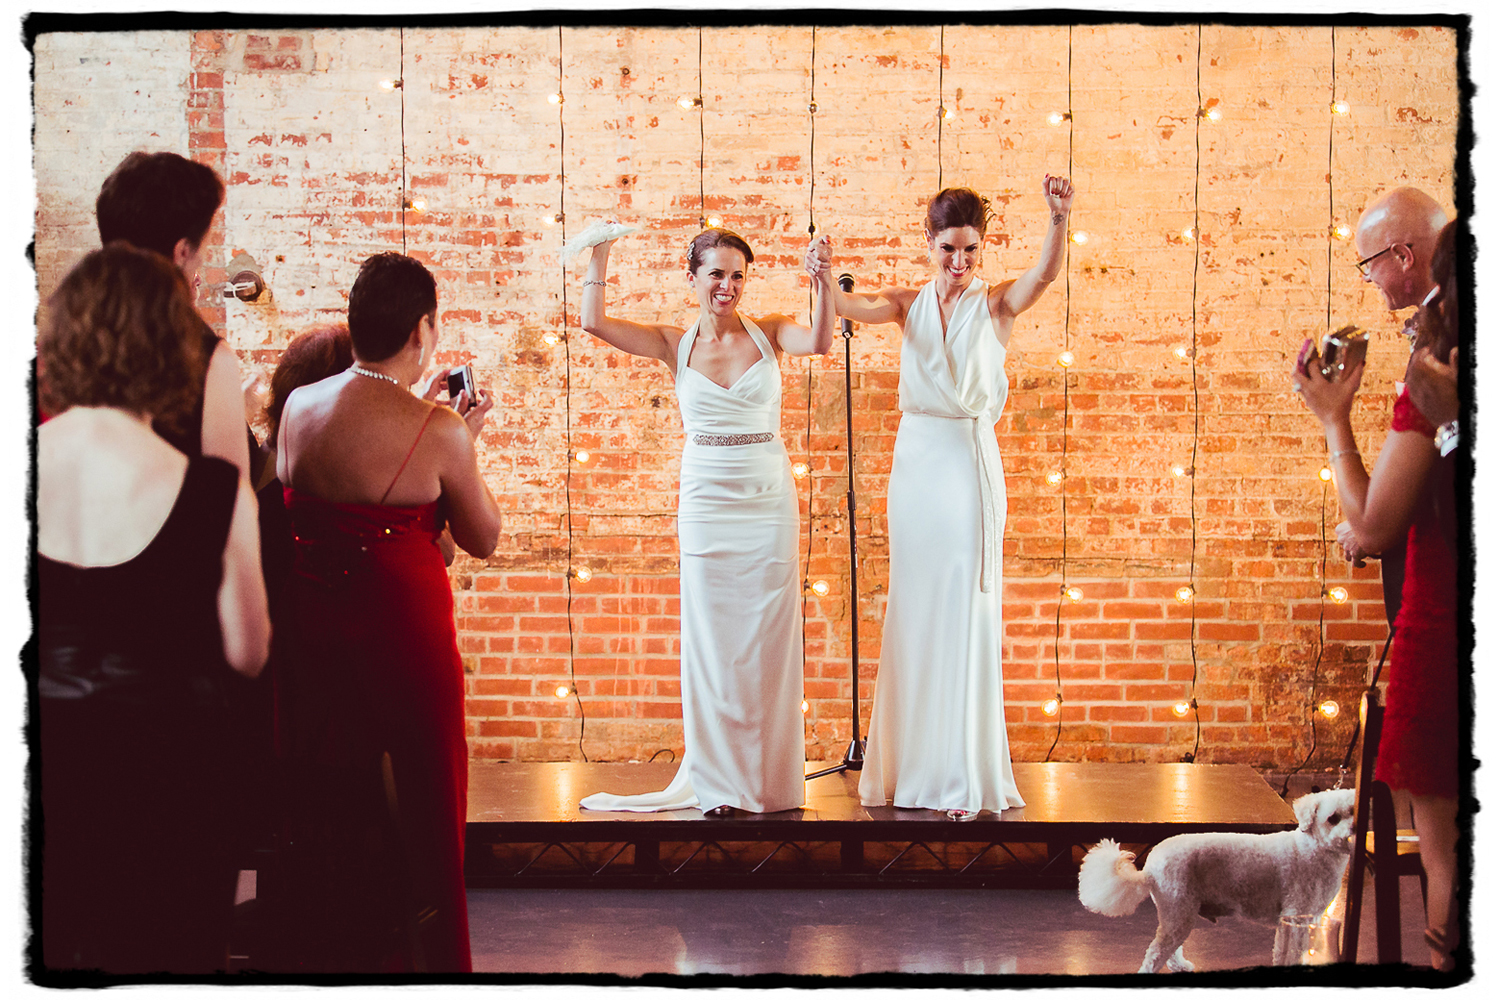 Lara & Nicole were married at The Green Building in front of a brick wall illuminated by hanging string lights.